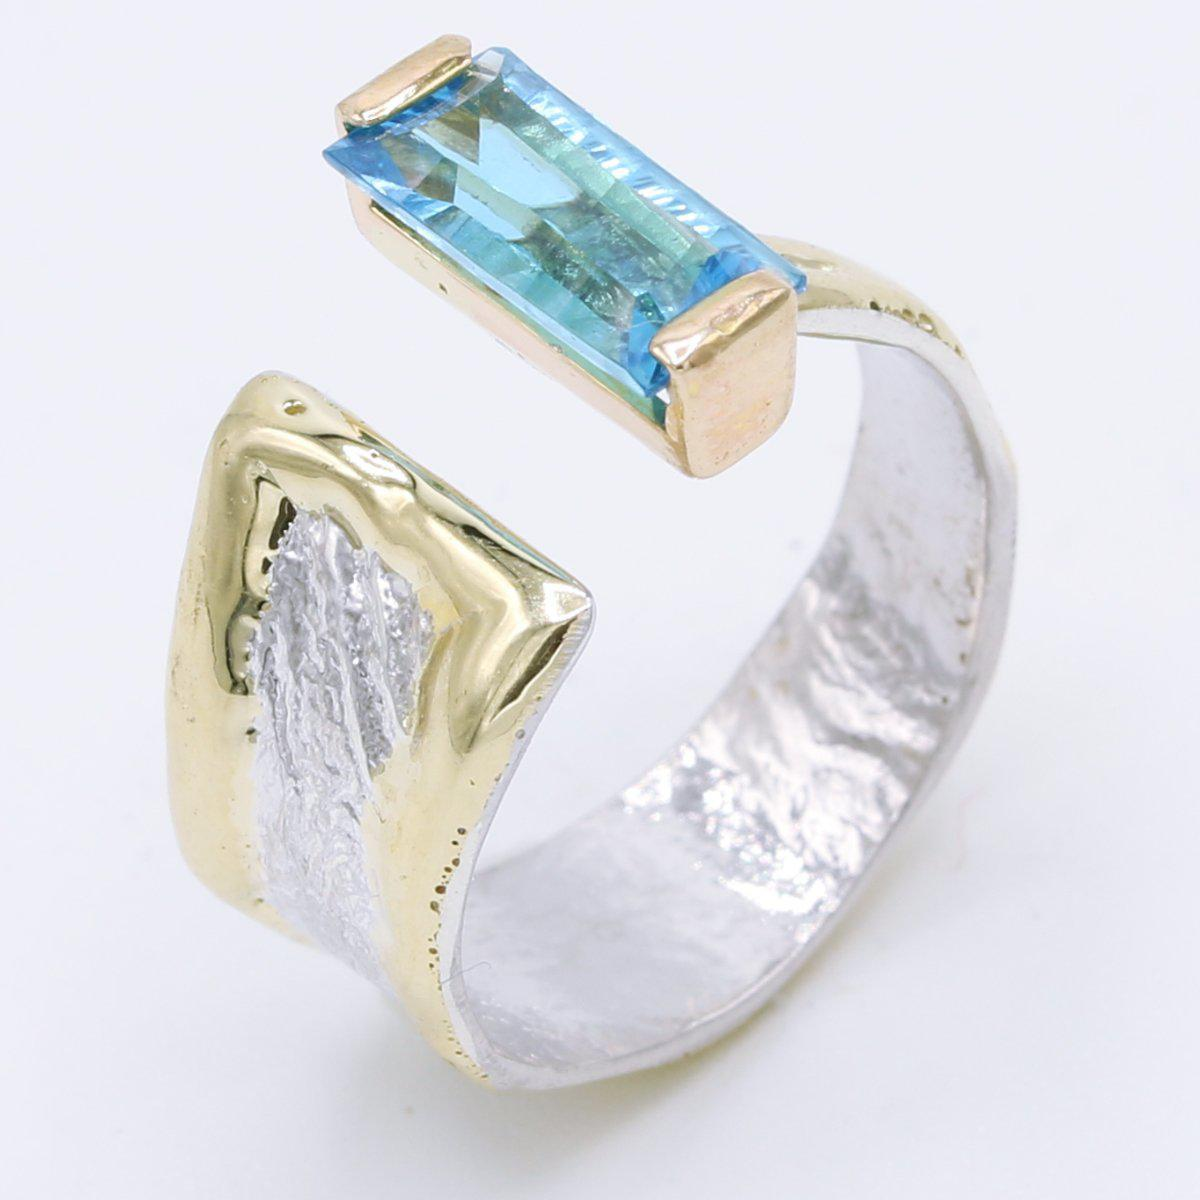 14K Gold & Crystalline Silver Blue Topaz Ring - 34913-Fusion Designs-Renee Taylor Gallery